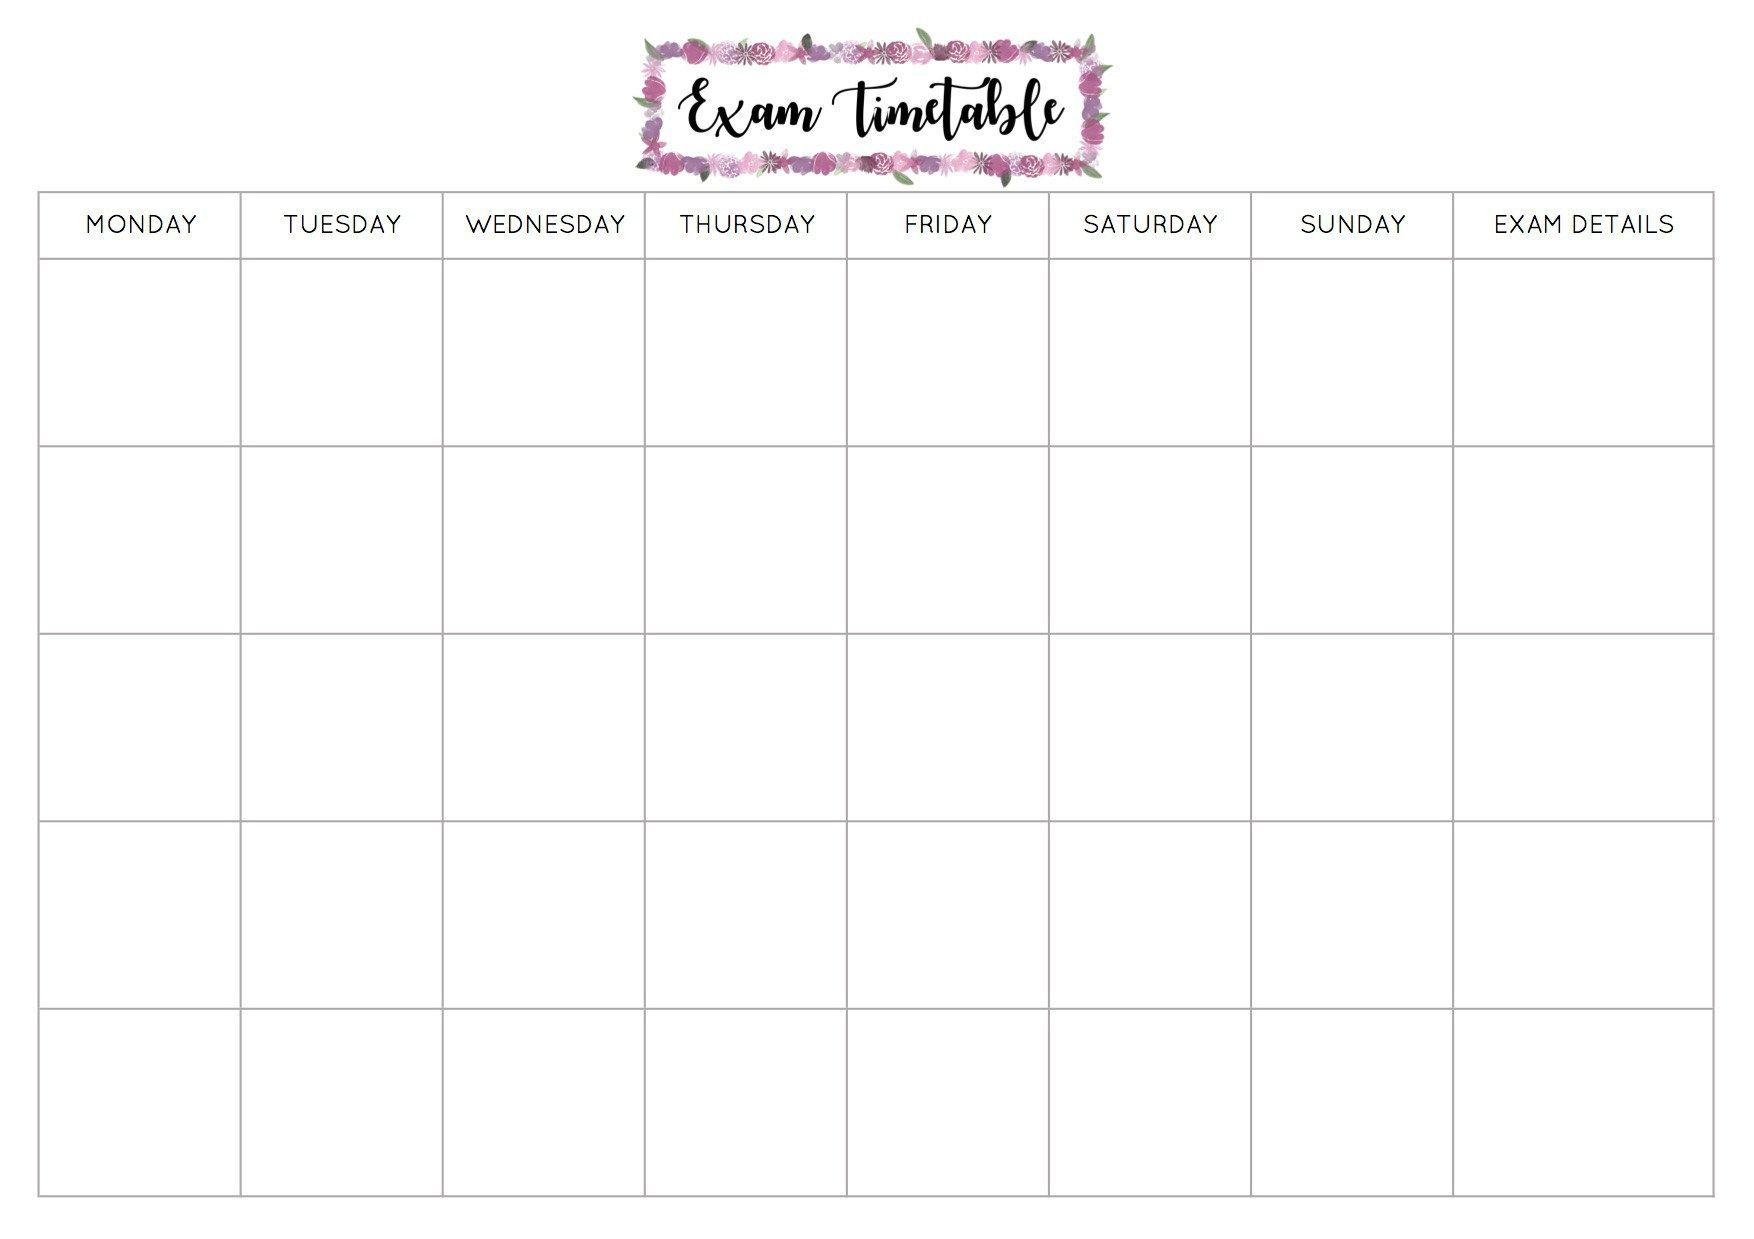 Free Exam Timetable Printable Study schedule template